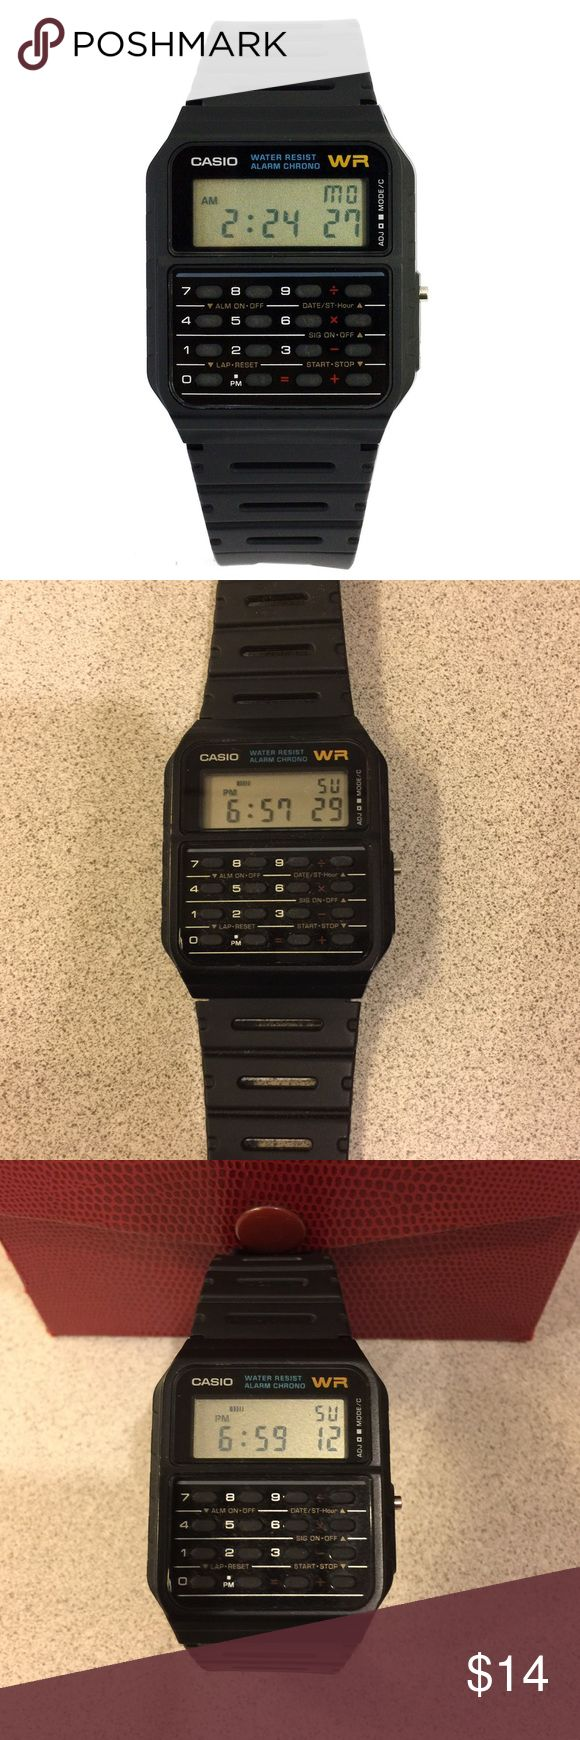 Casio Databank Calculator Watch Only worn a few times and remains in great condition. Bring the techy calculator watch back with this Casio Databank Calculator Watch. The manual is easily obtained online. Have fun with this piece. Casio Accessories Watches